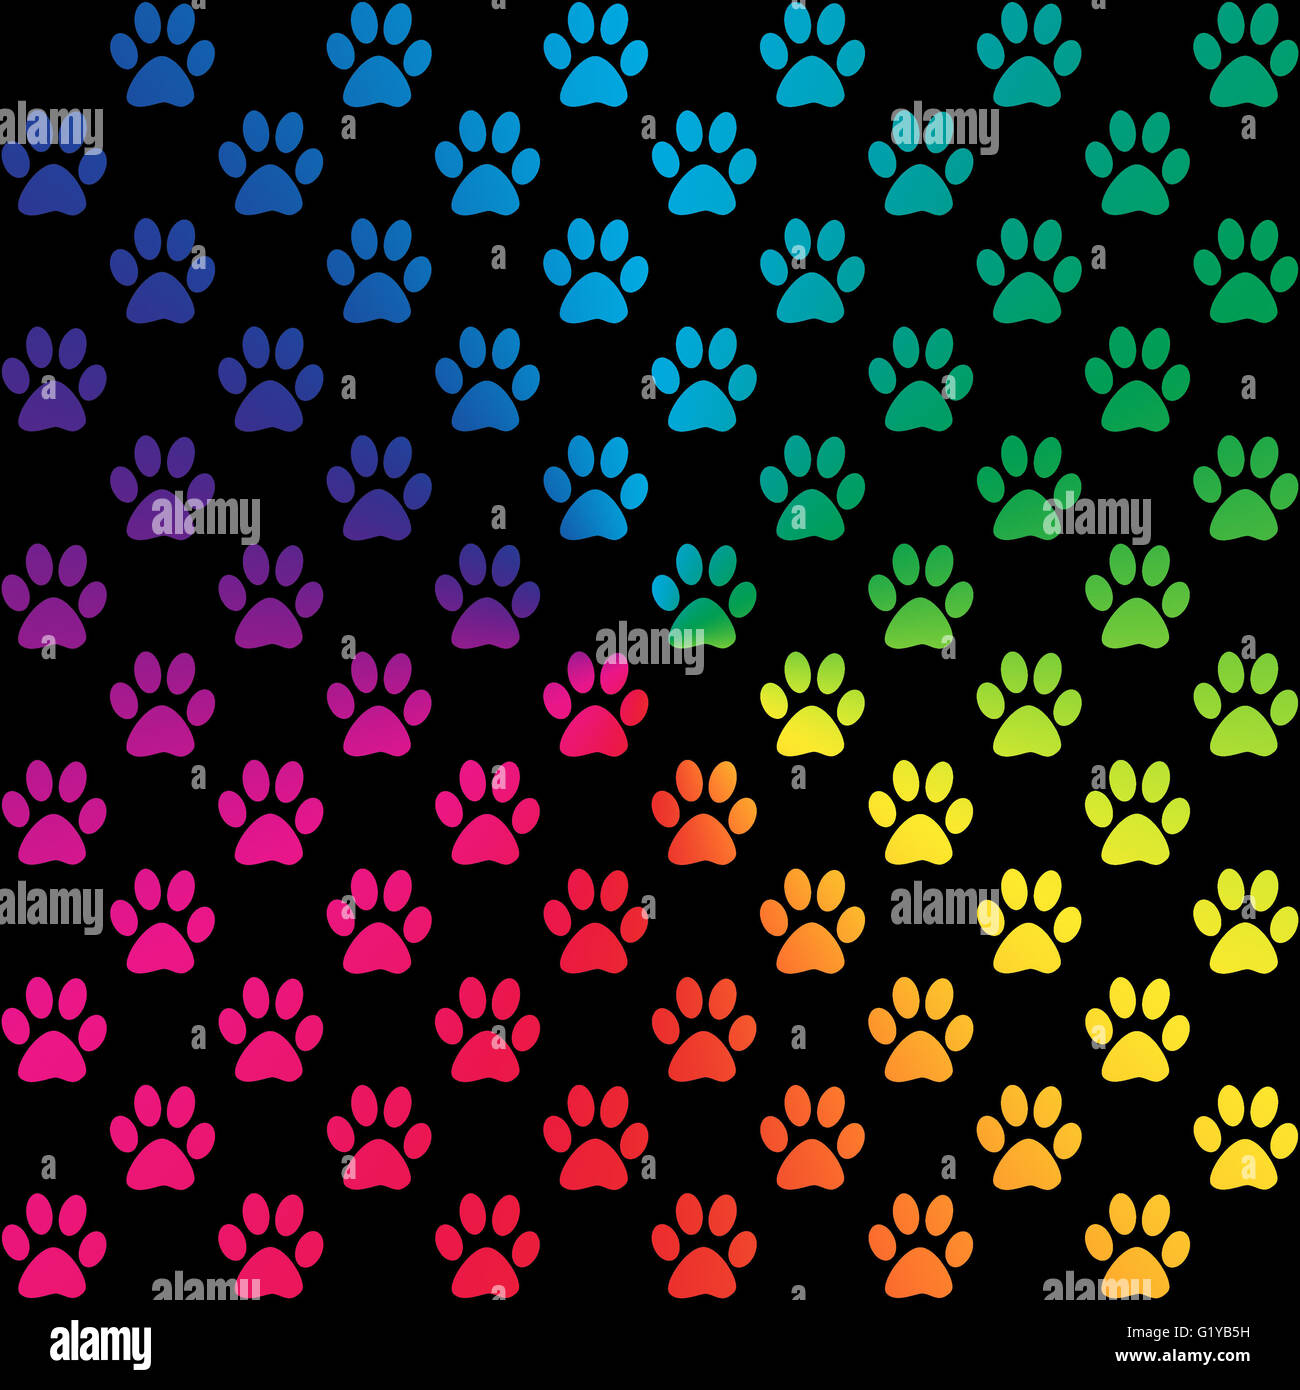 Cute Paw Print Wallpaper Paw Prints In Gradient Rainbow Colors On Black Background